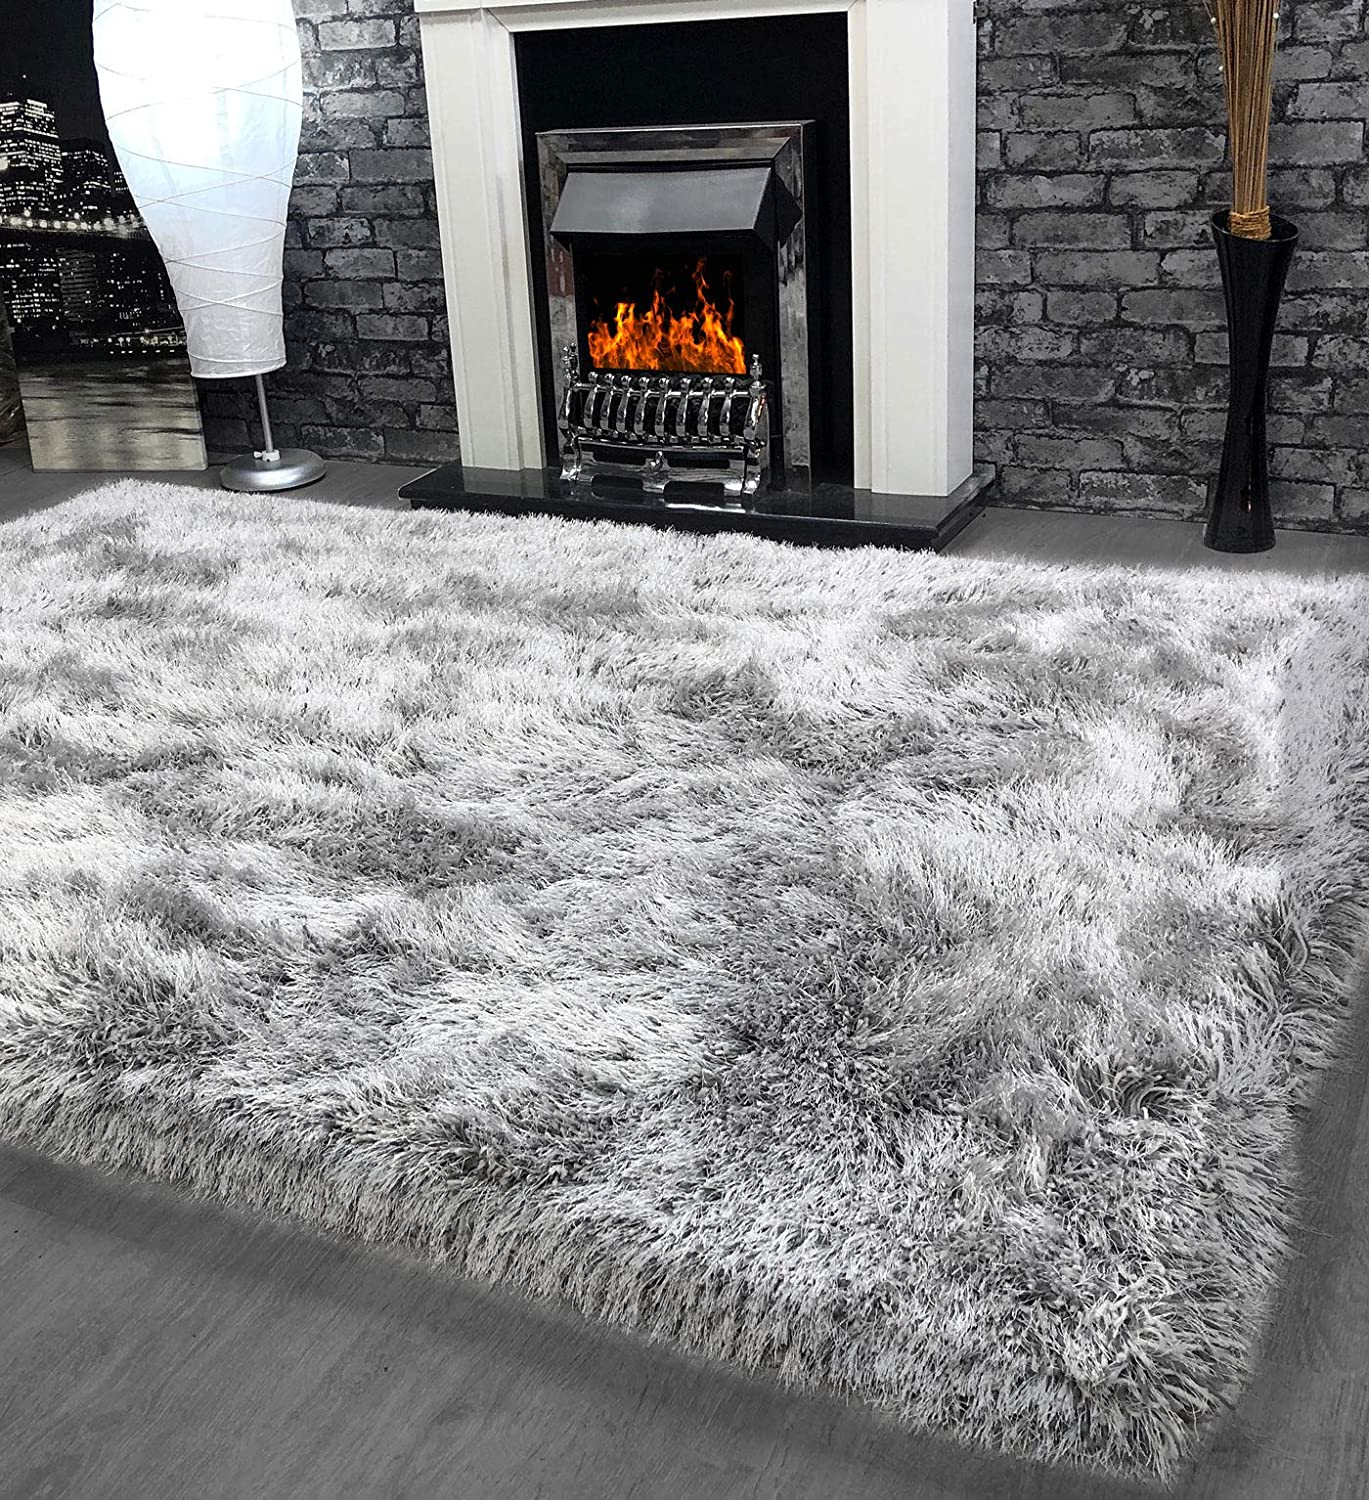 9cm Shaggy Silver Grey 120x170cm Super Plush Soft Touch Shag Pile Rug 90mm Pile Stain Resistant Quality Bedroom Decor Accessories Fluffy 100 Polyester Living Room Rugs Amazon Co Uk Kitchen Home